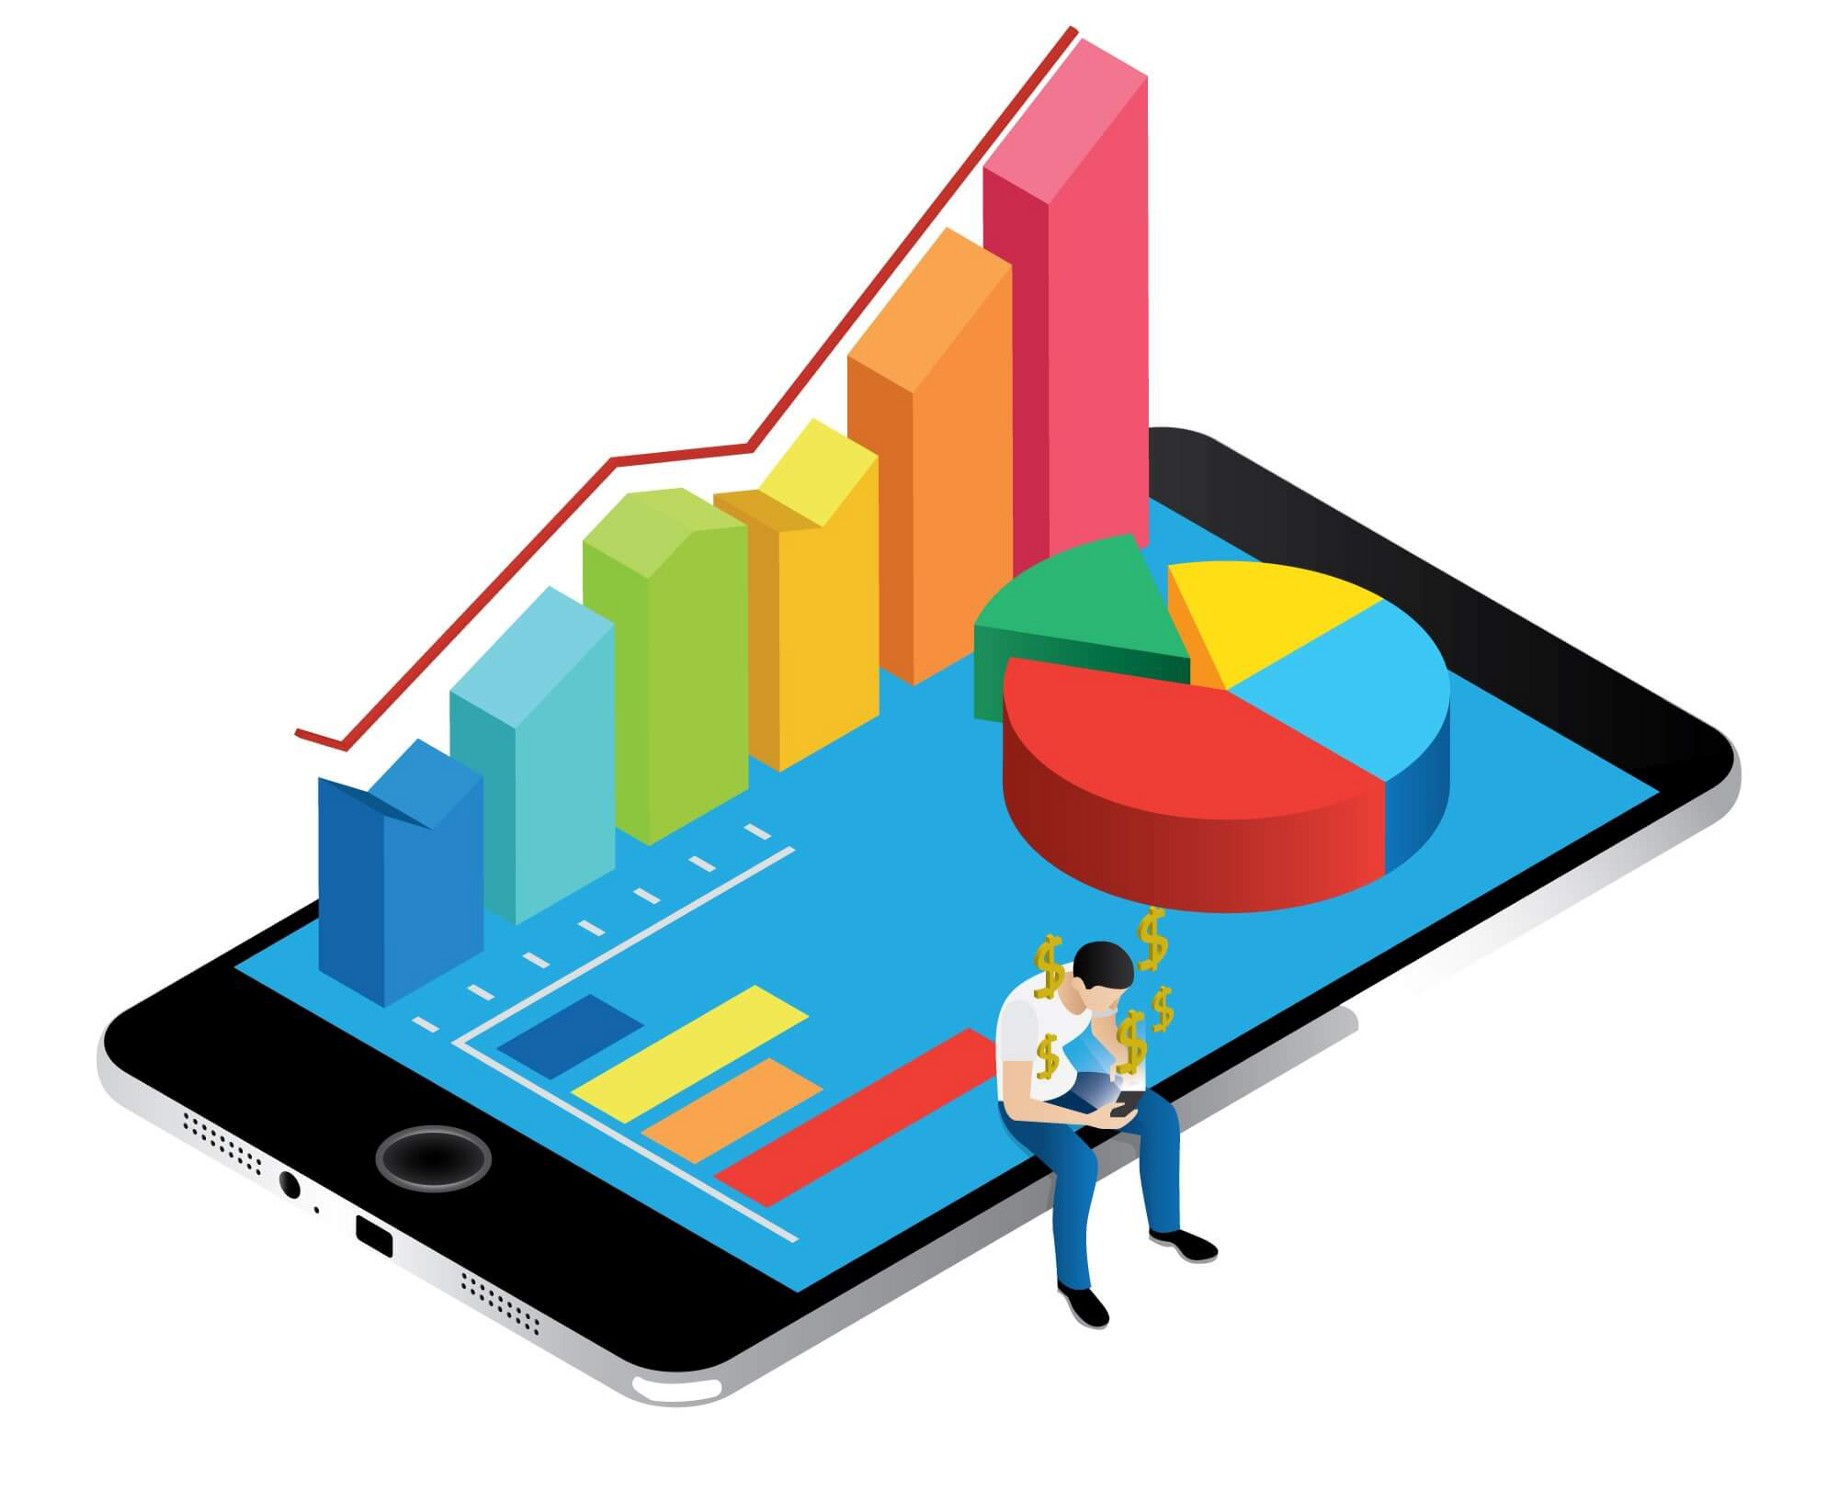 How to extract analytics data from your iOS application